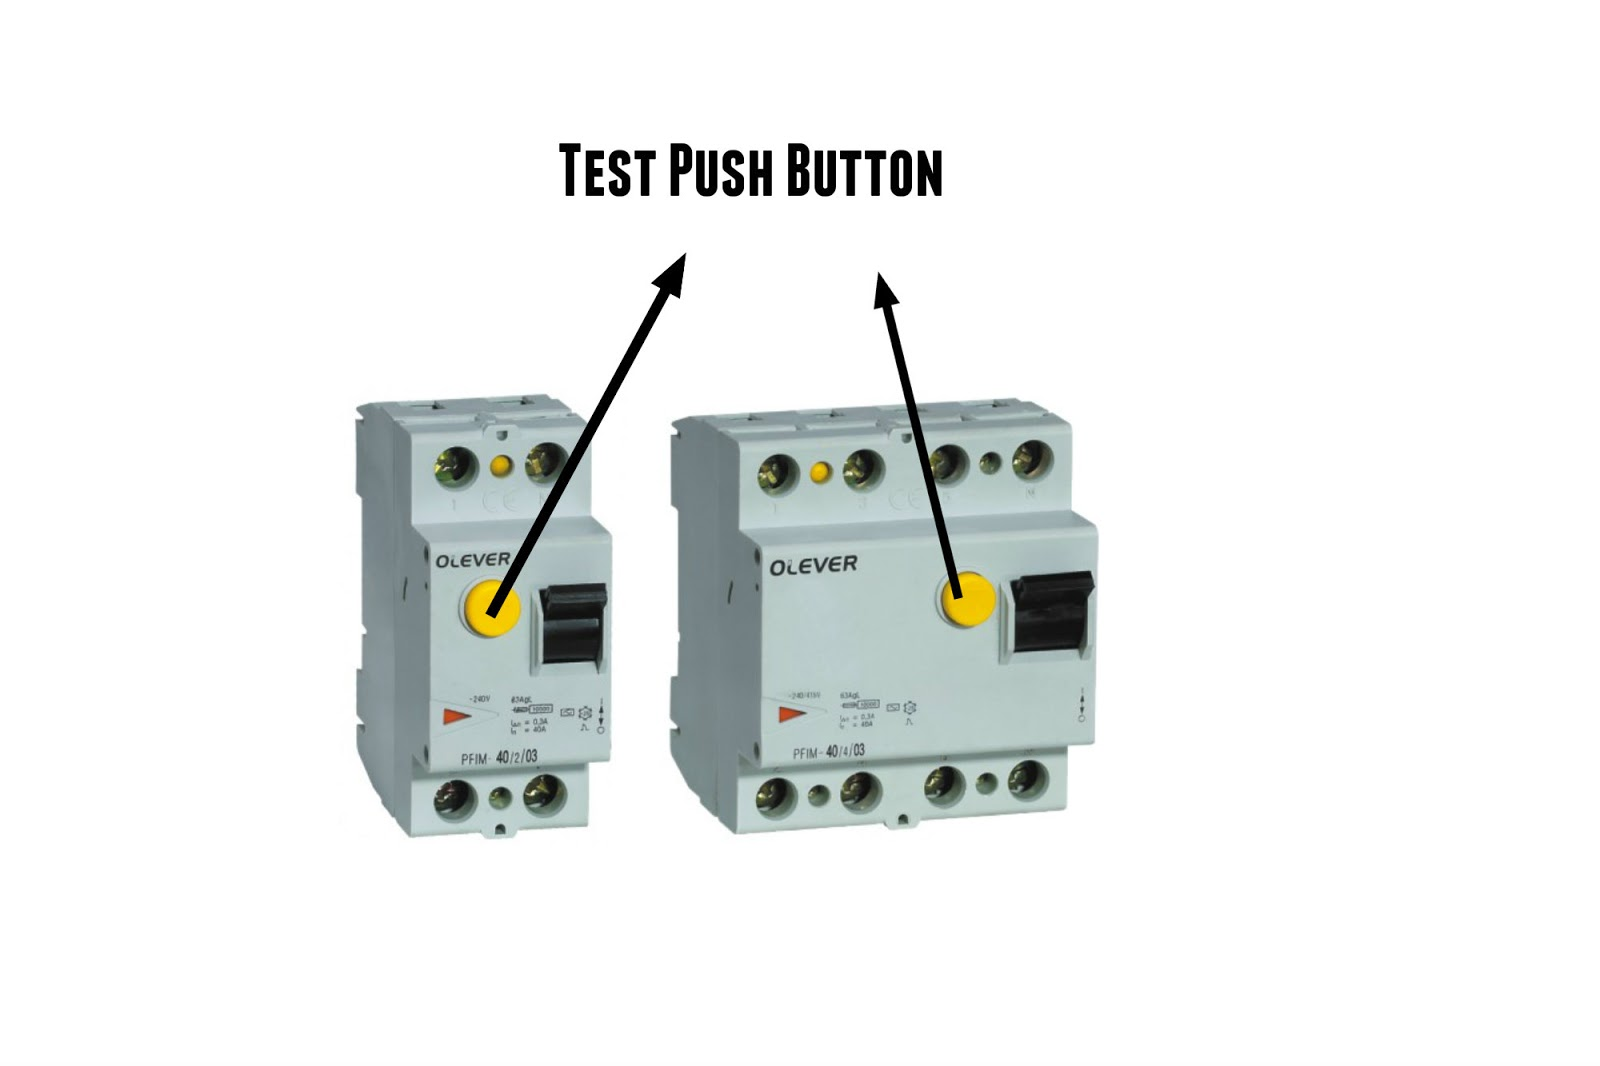 The World Through Electricity Residual Current Circuit Breaker Rccb Wiring Diagram Every Productiontheres A Push Button To Test For Make Surethe Device Is Work Properly When You Press Buttoncurrent From Live Will